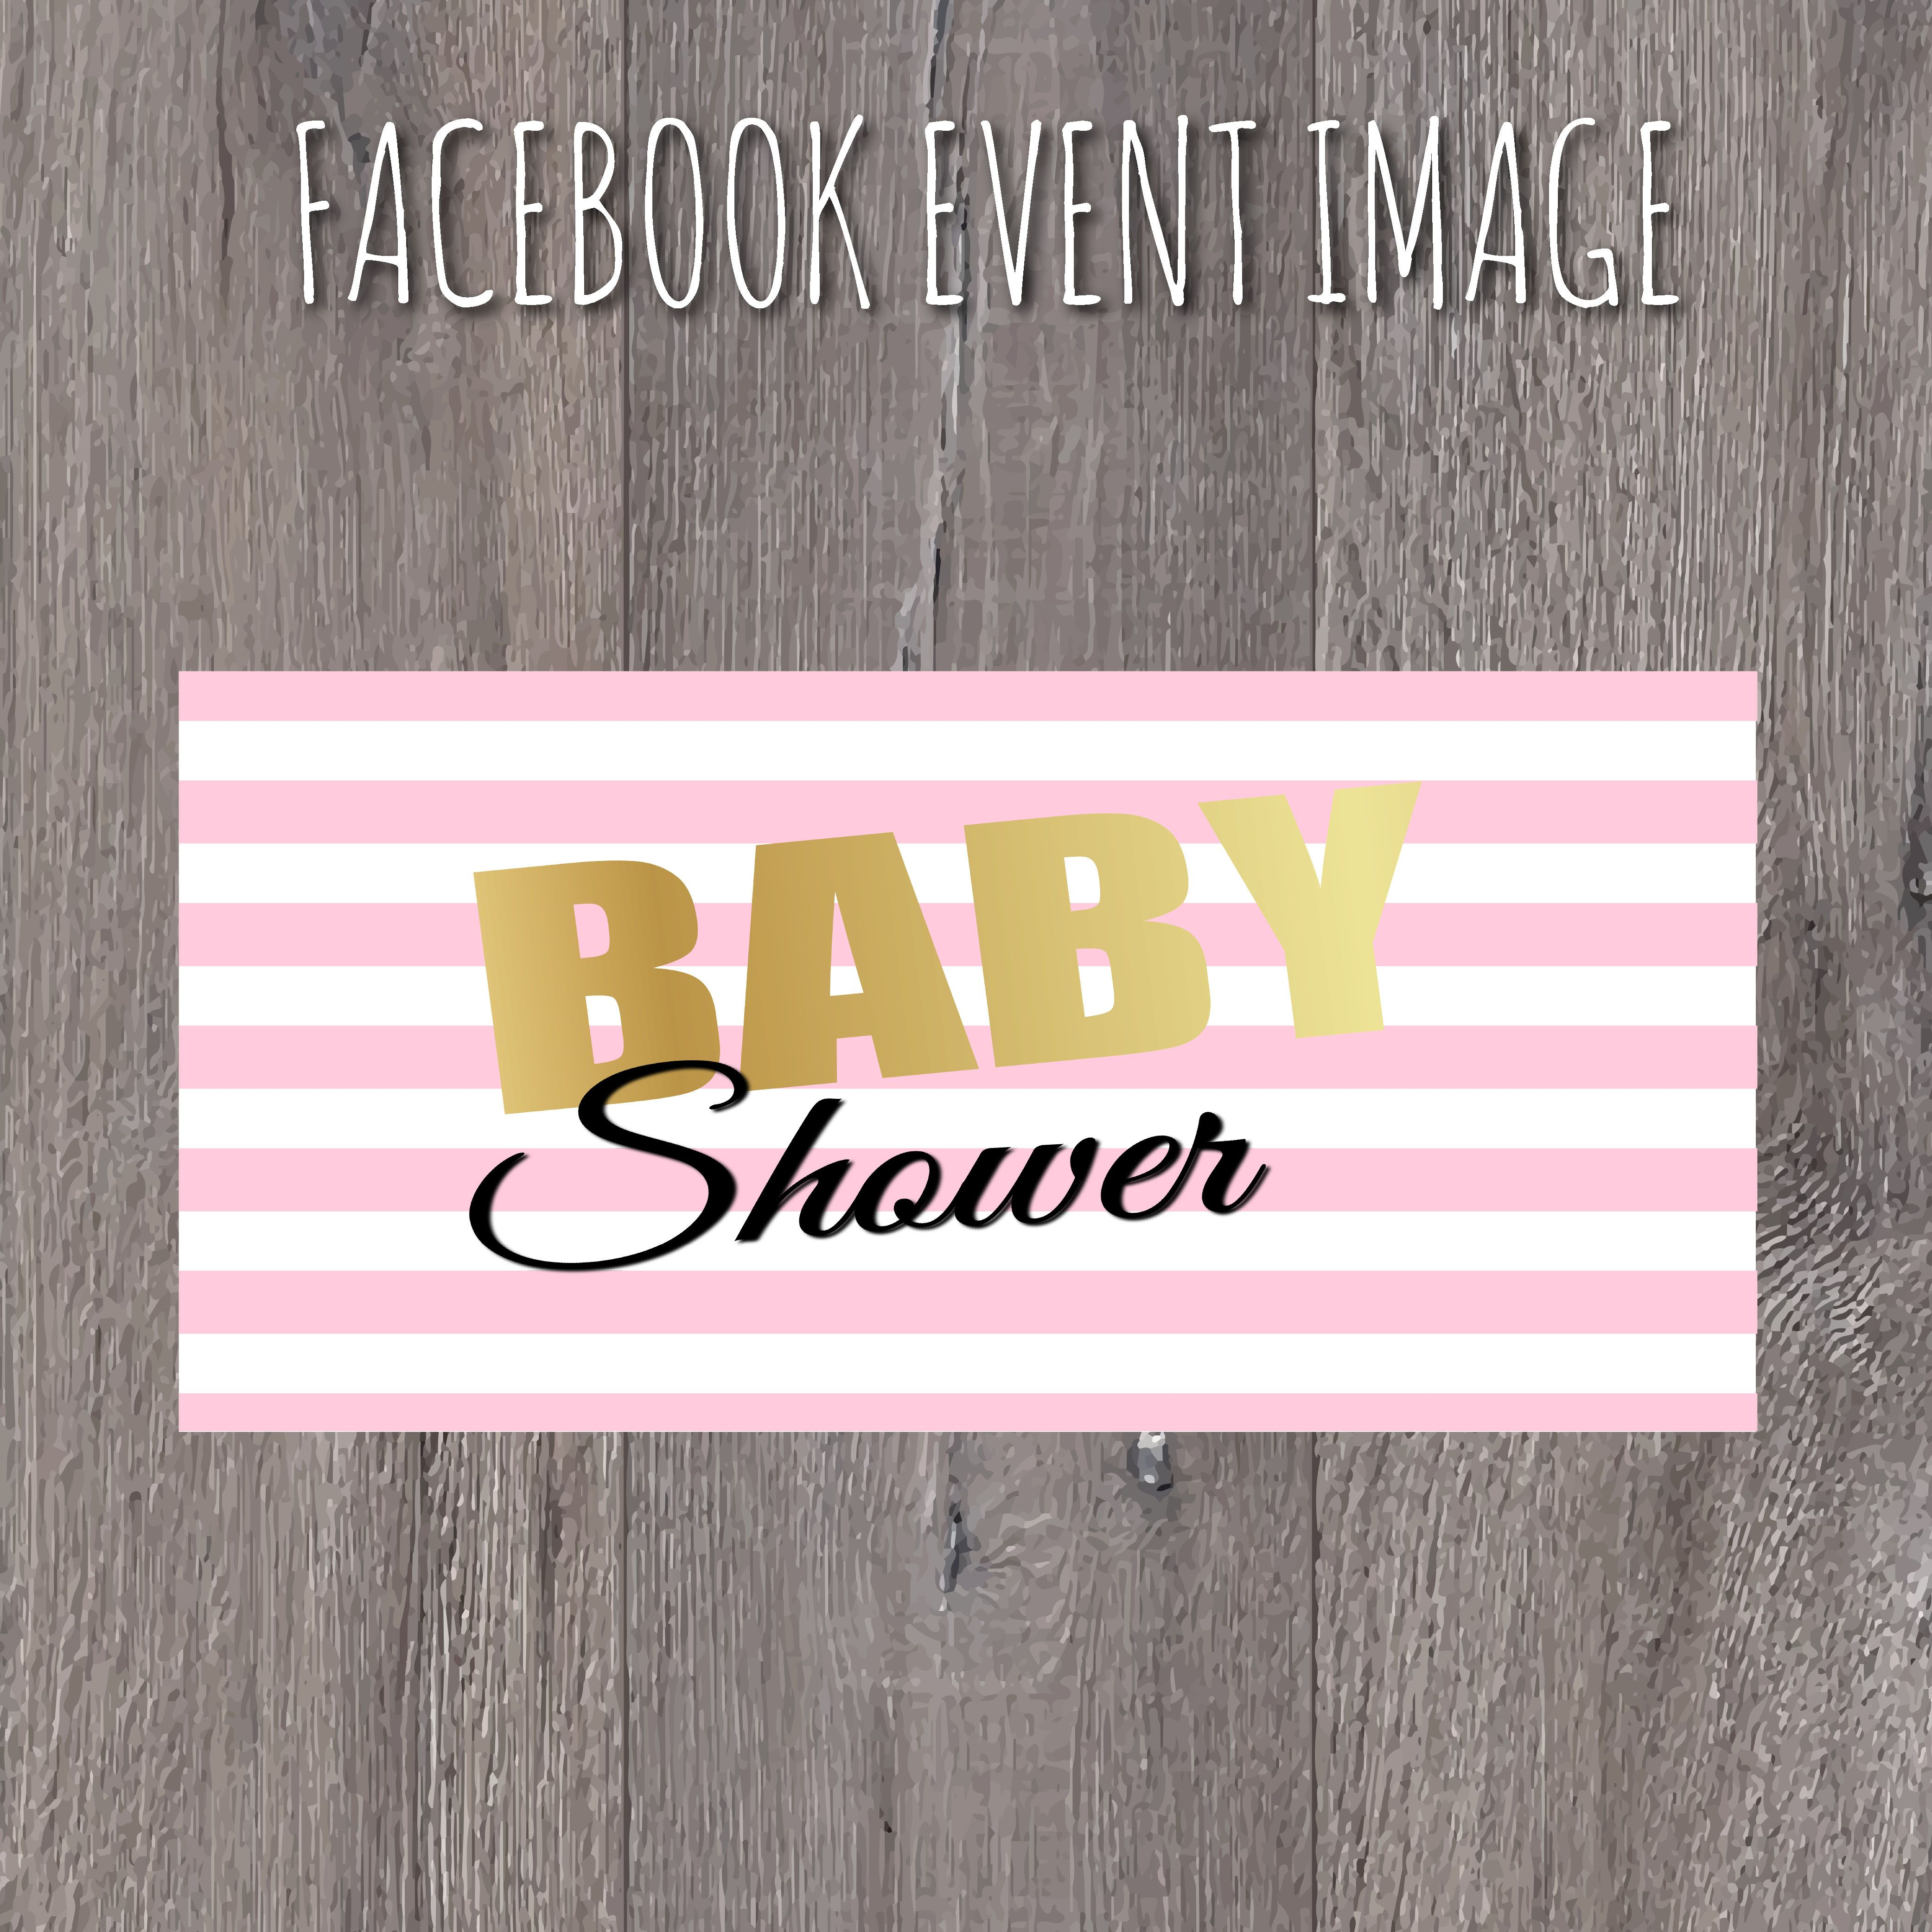 Baby Shower Facebook Event Image It S A Girl Baby Girl Baby Baby Shower Baby Shower Facebook Facebook Event Facebook Cover Photos